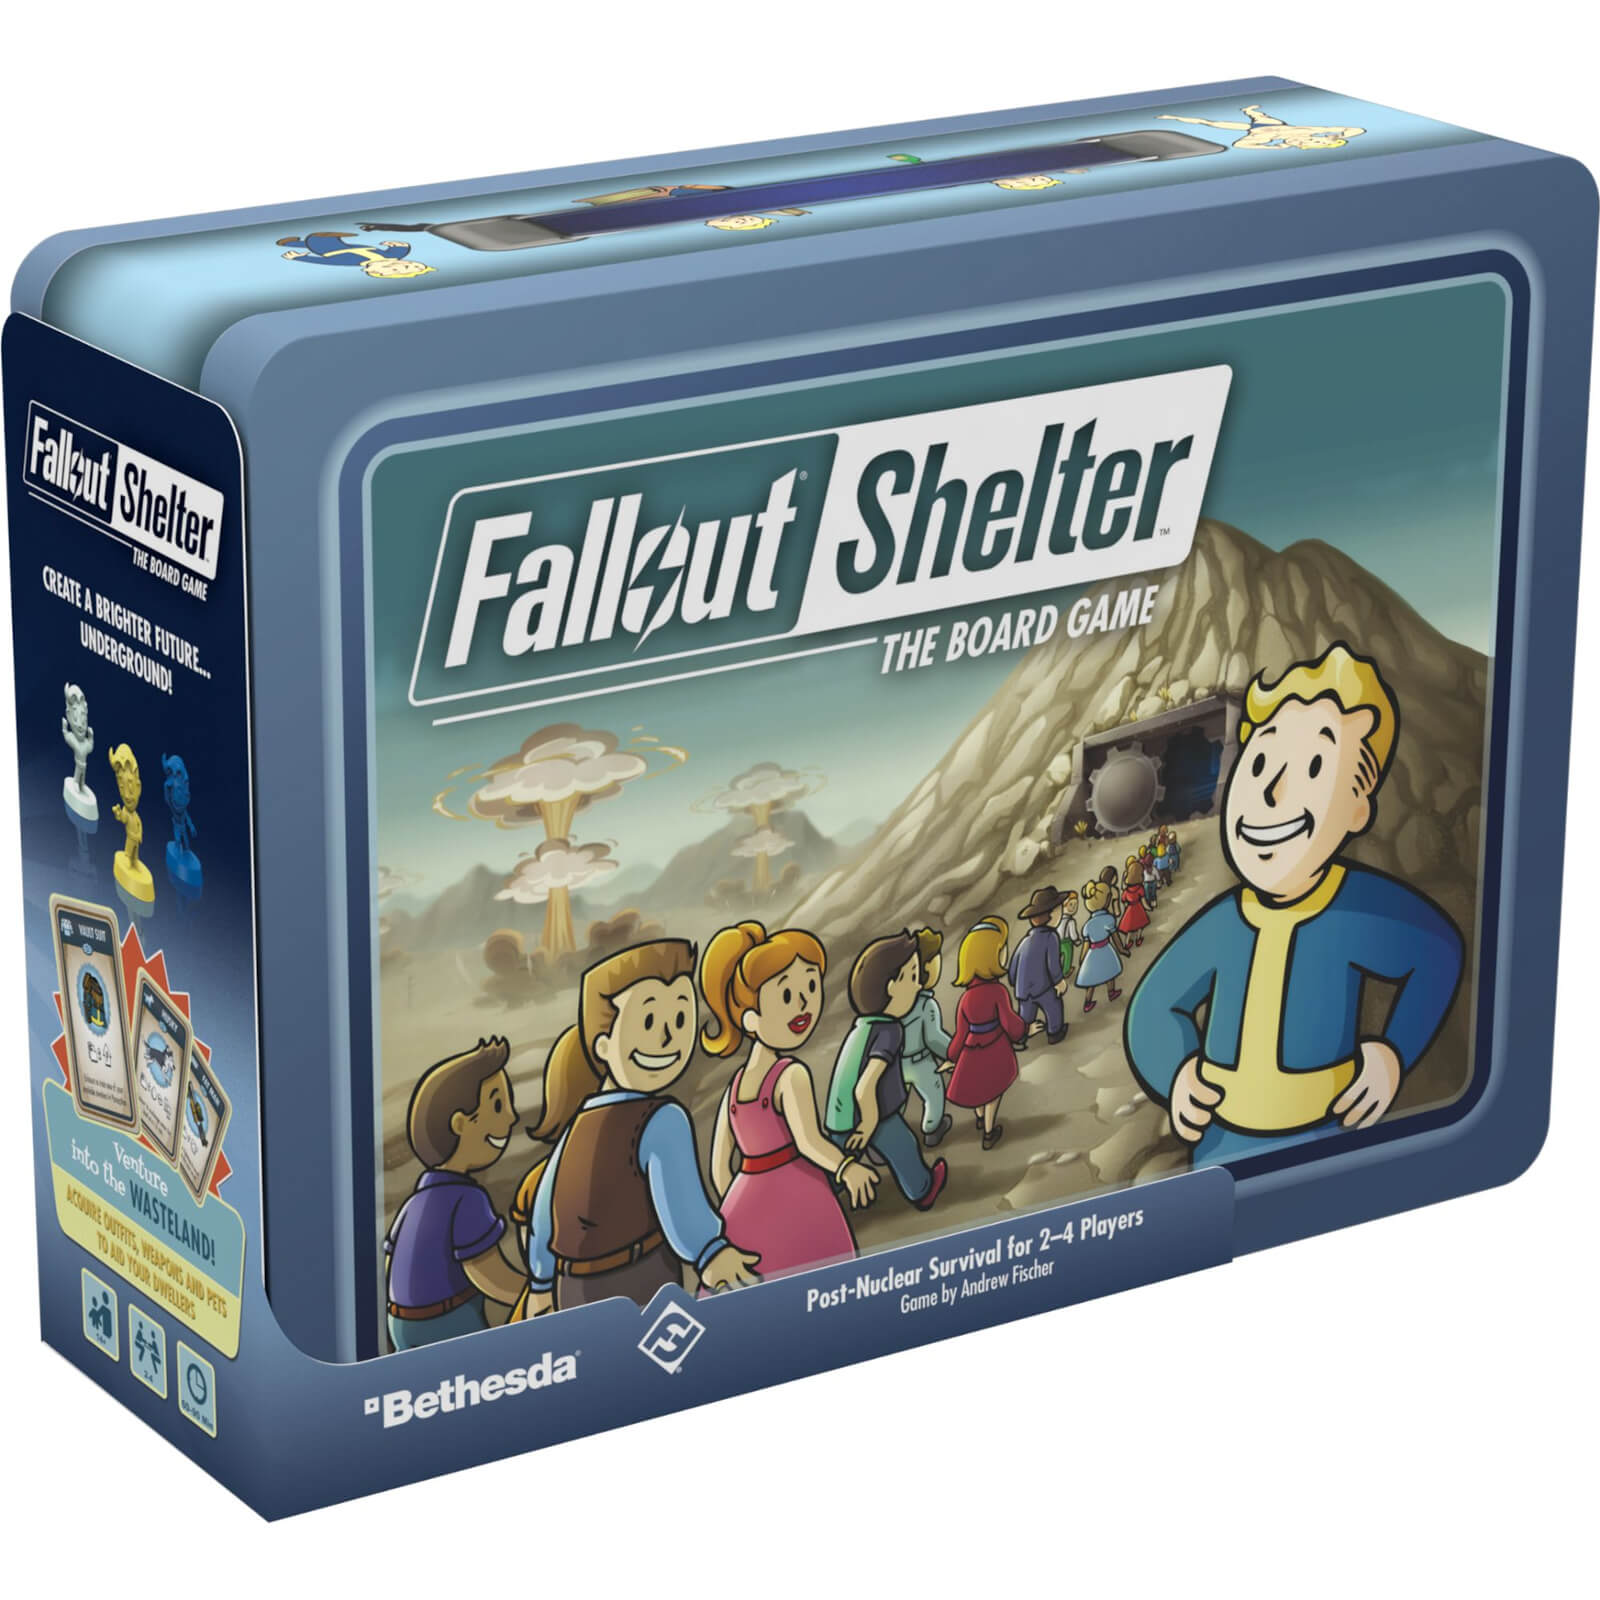 Image of Fallout Shelter: The Board Game